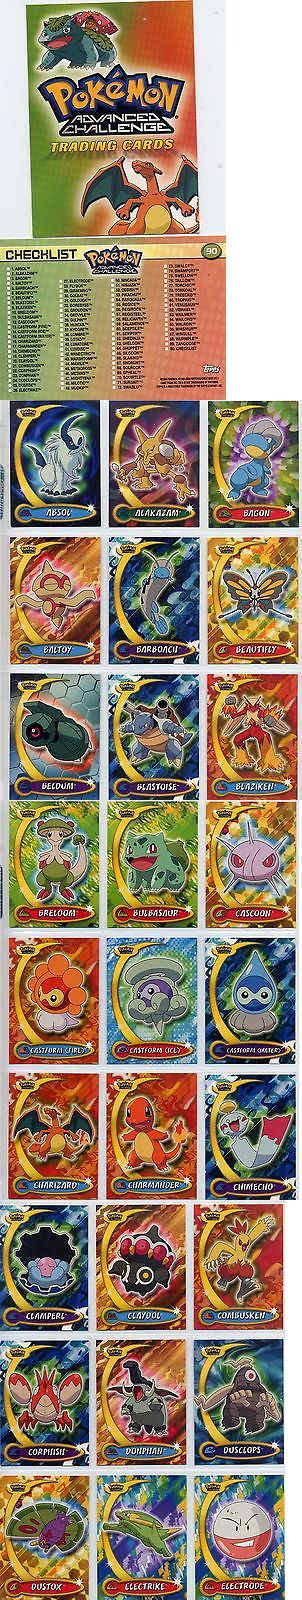 Pok mon Complete Sets 104046: Complete Topps Pokemon Advanced Challenge Set! 90 New From The Pack Cards! -> BUY IT NOW ONLY: $36.79 on eBay!